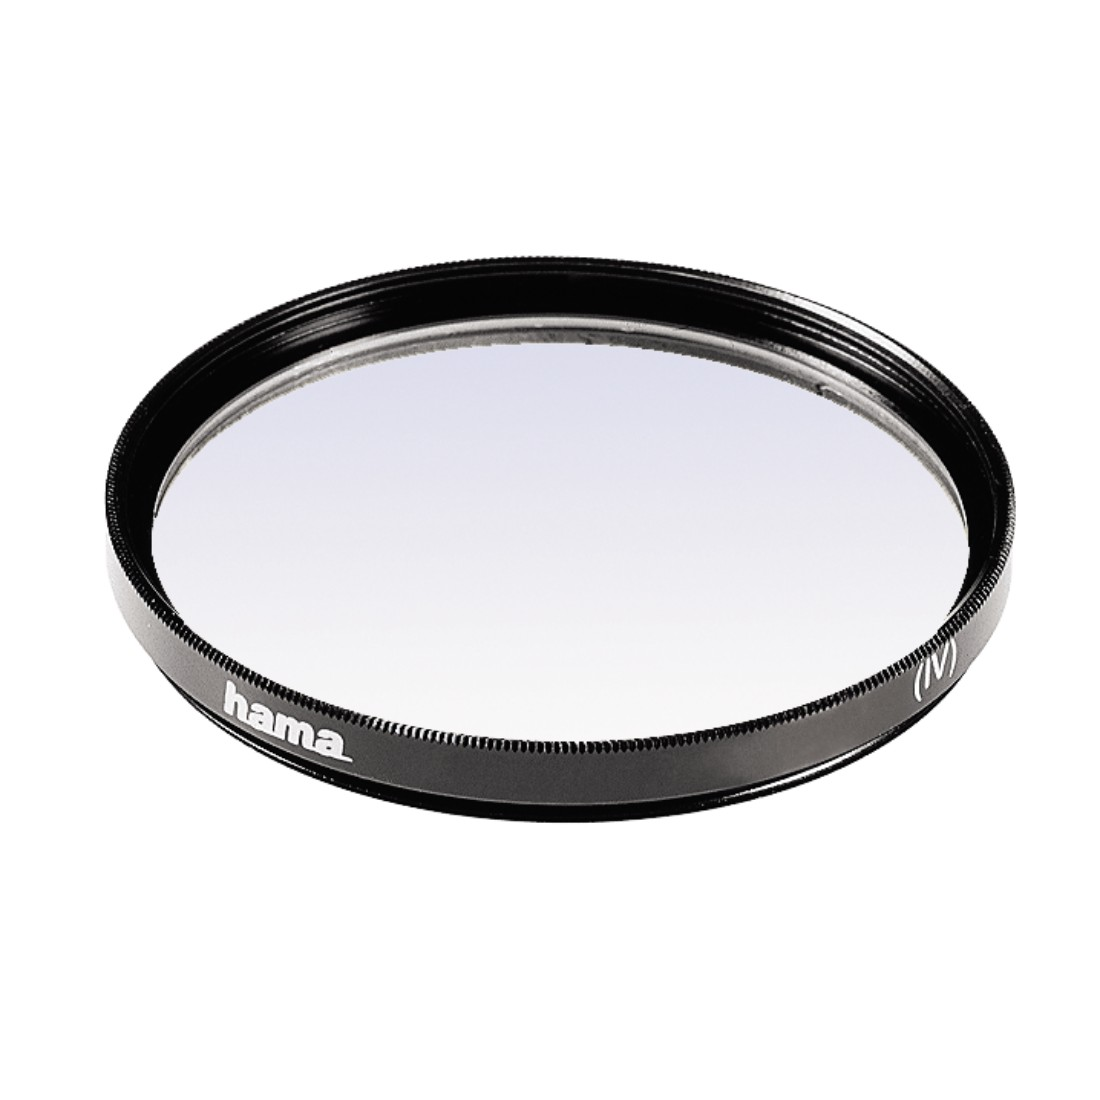 abx High-Res Image - Hama, UV Filter, coated, 72.0 mm